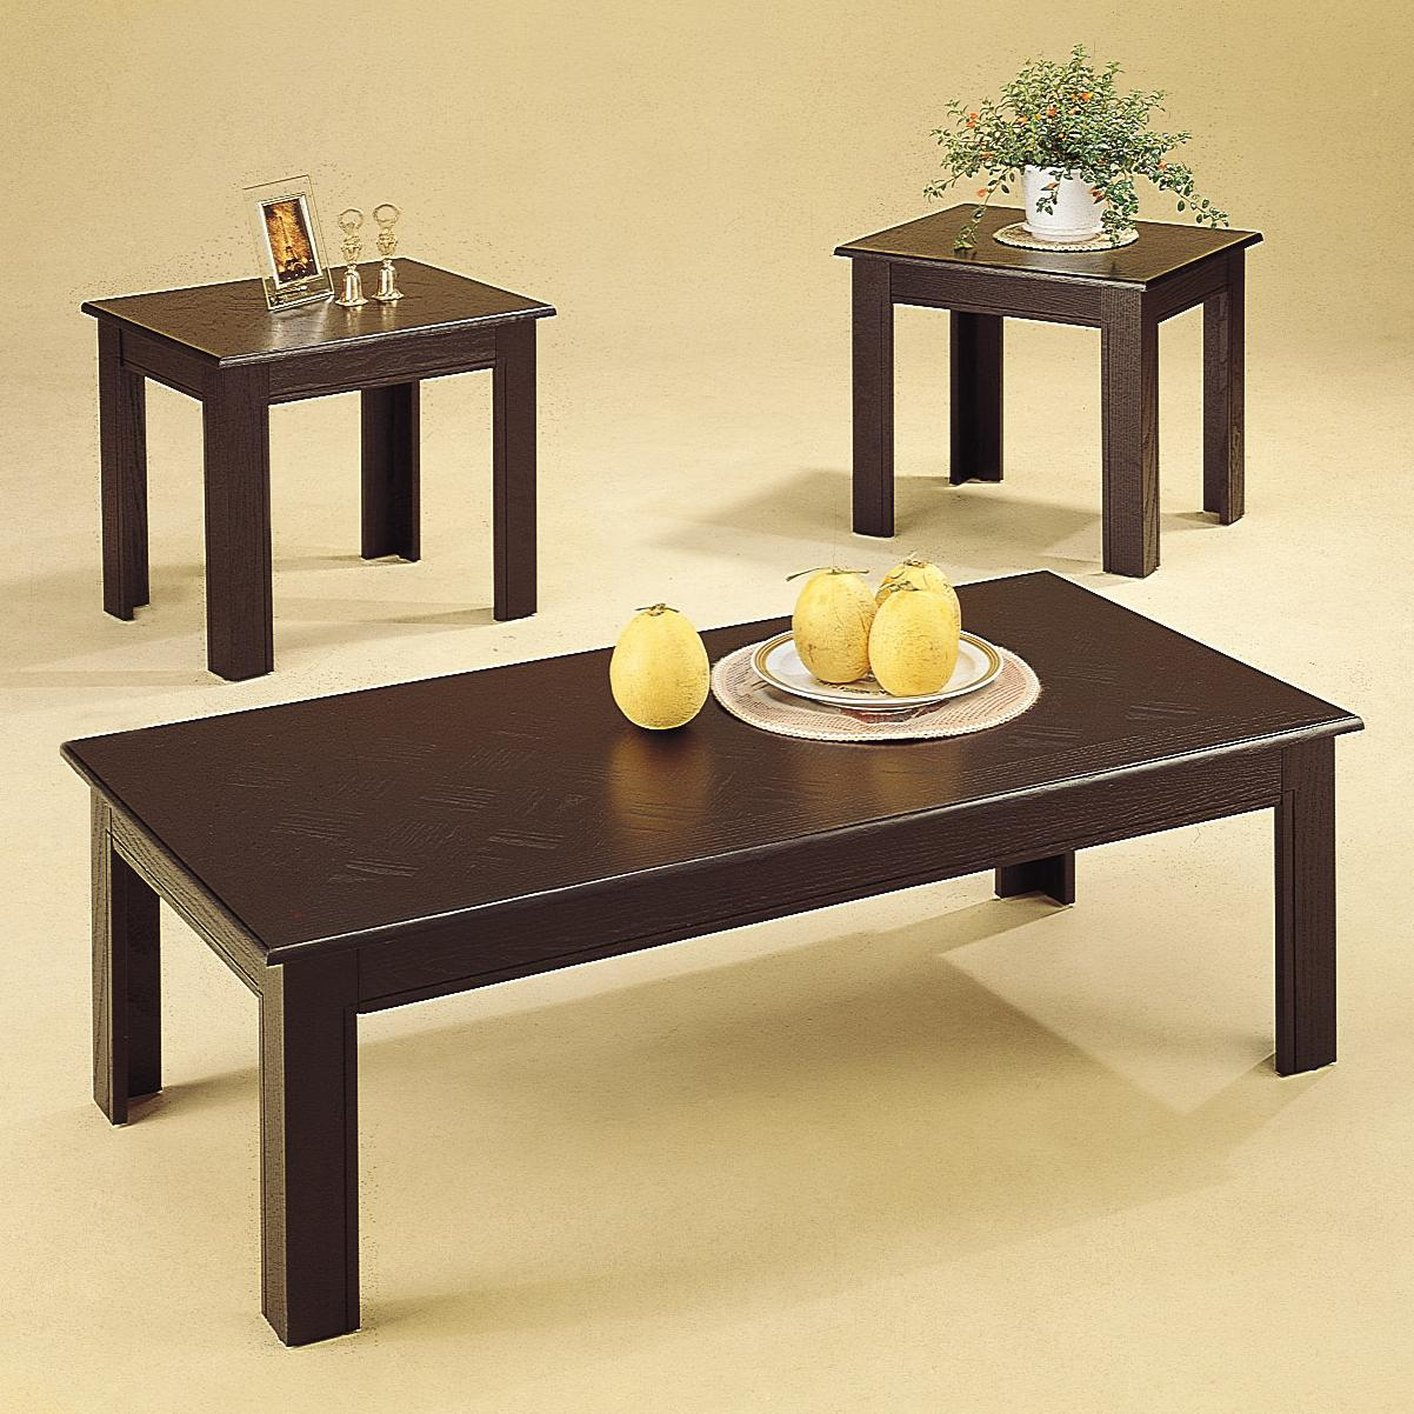 Acosta Black Wood Coffee Table Set